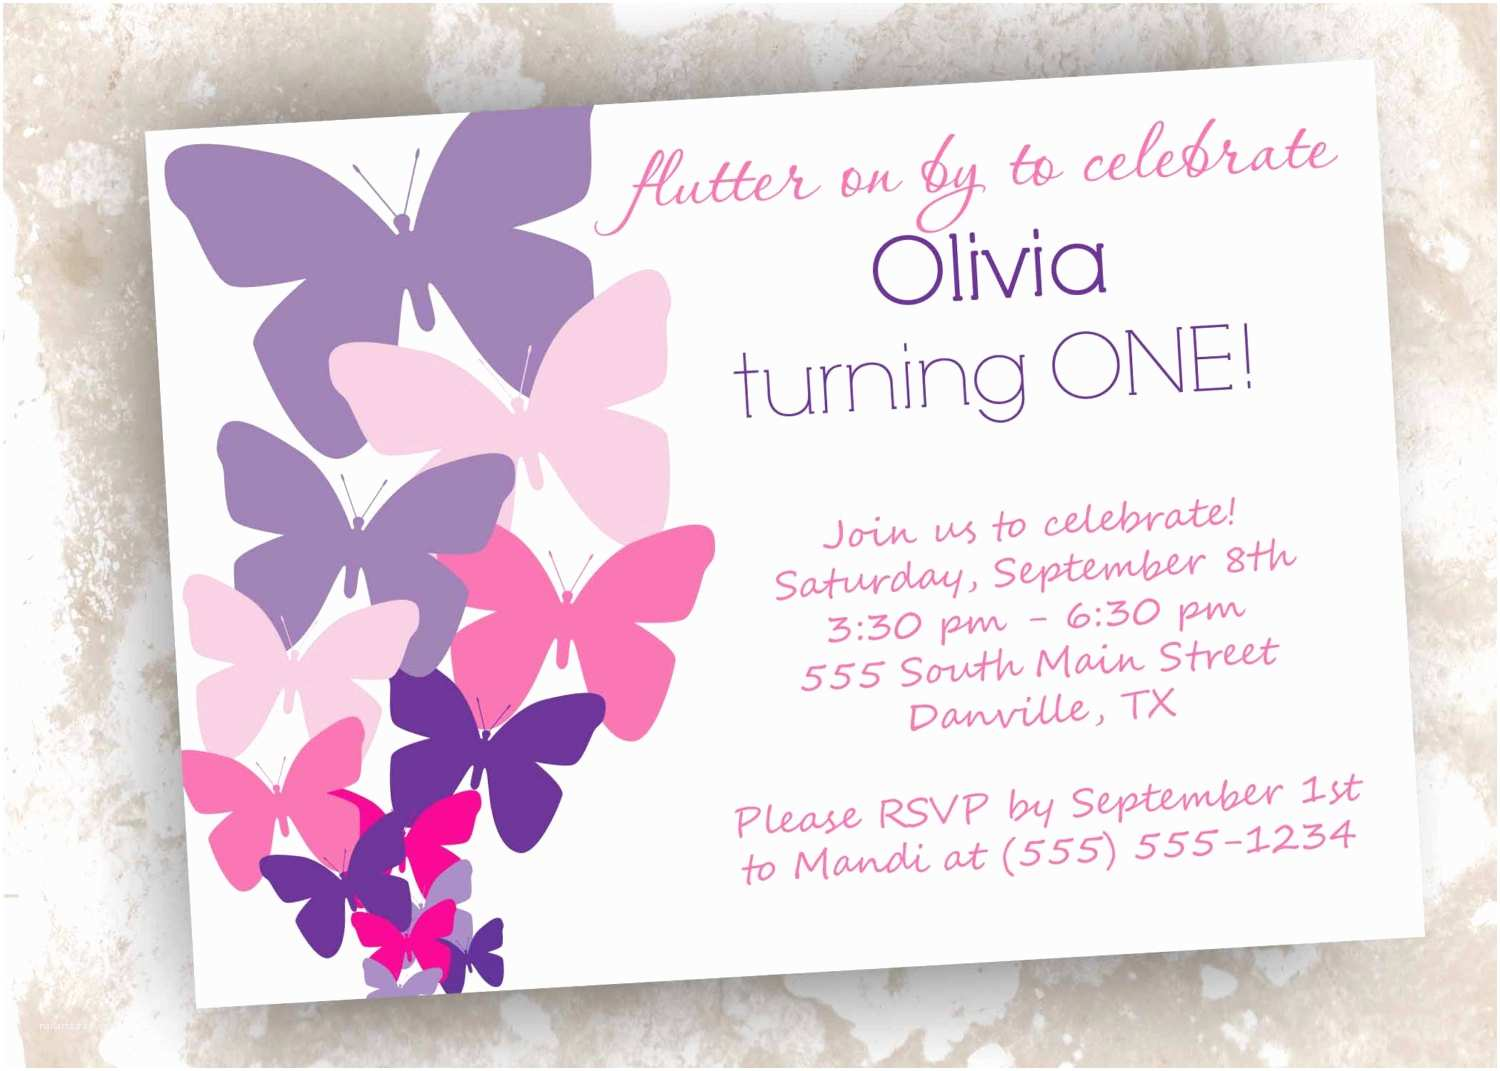 Party Invitations Marvelous Butterfly Birthday Invitations Template All